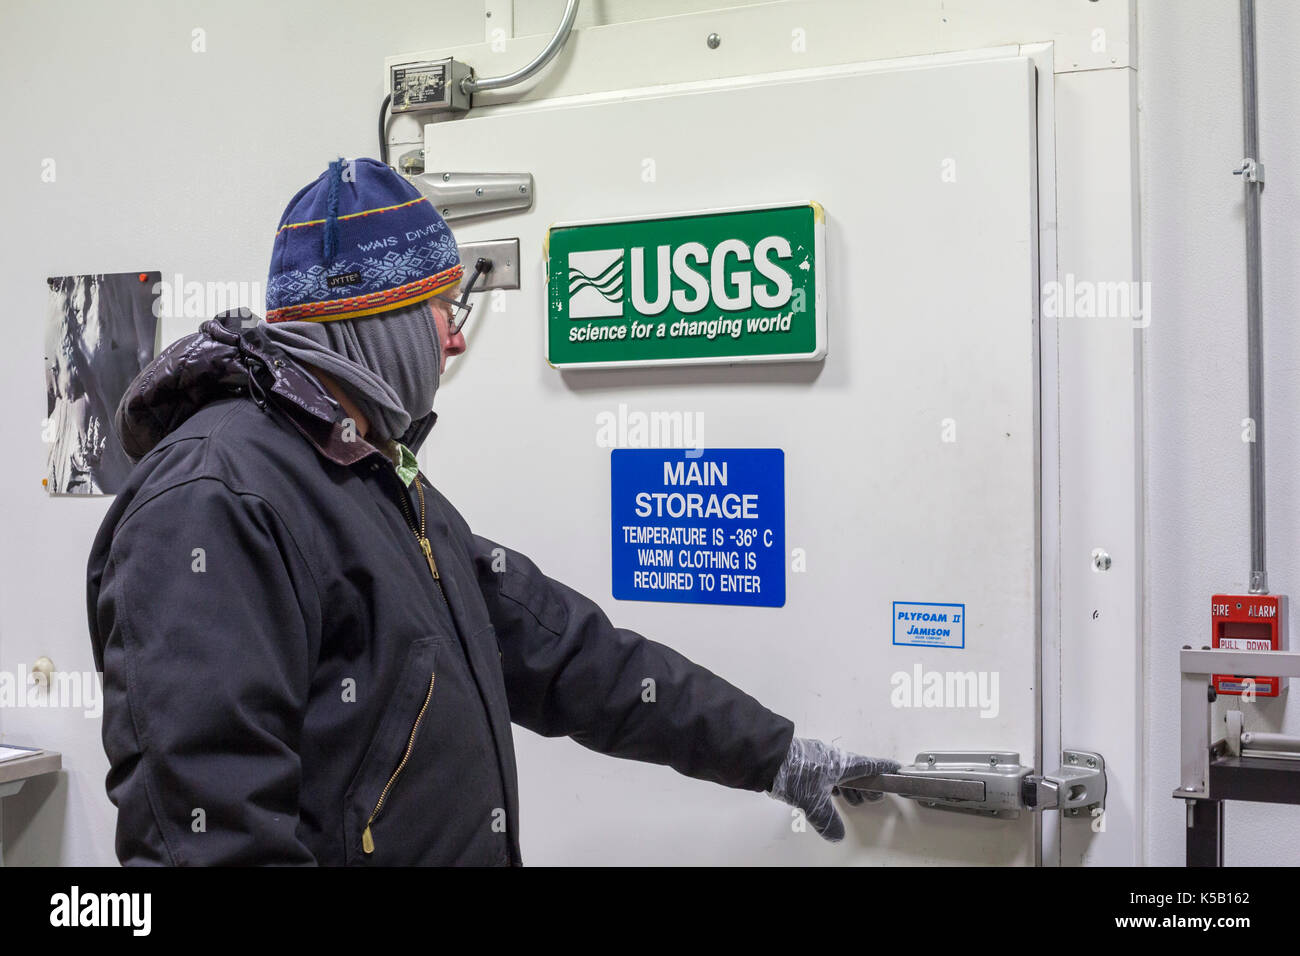 Denver, Colorado - Geoff Hargreaves, curator at the National Ice Core Laboratory, enters the storage room where ice cores are held at -36 degrees C (- - Stock Image